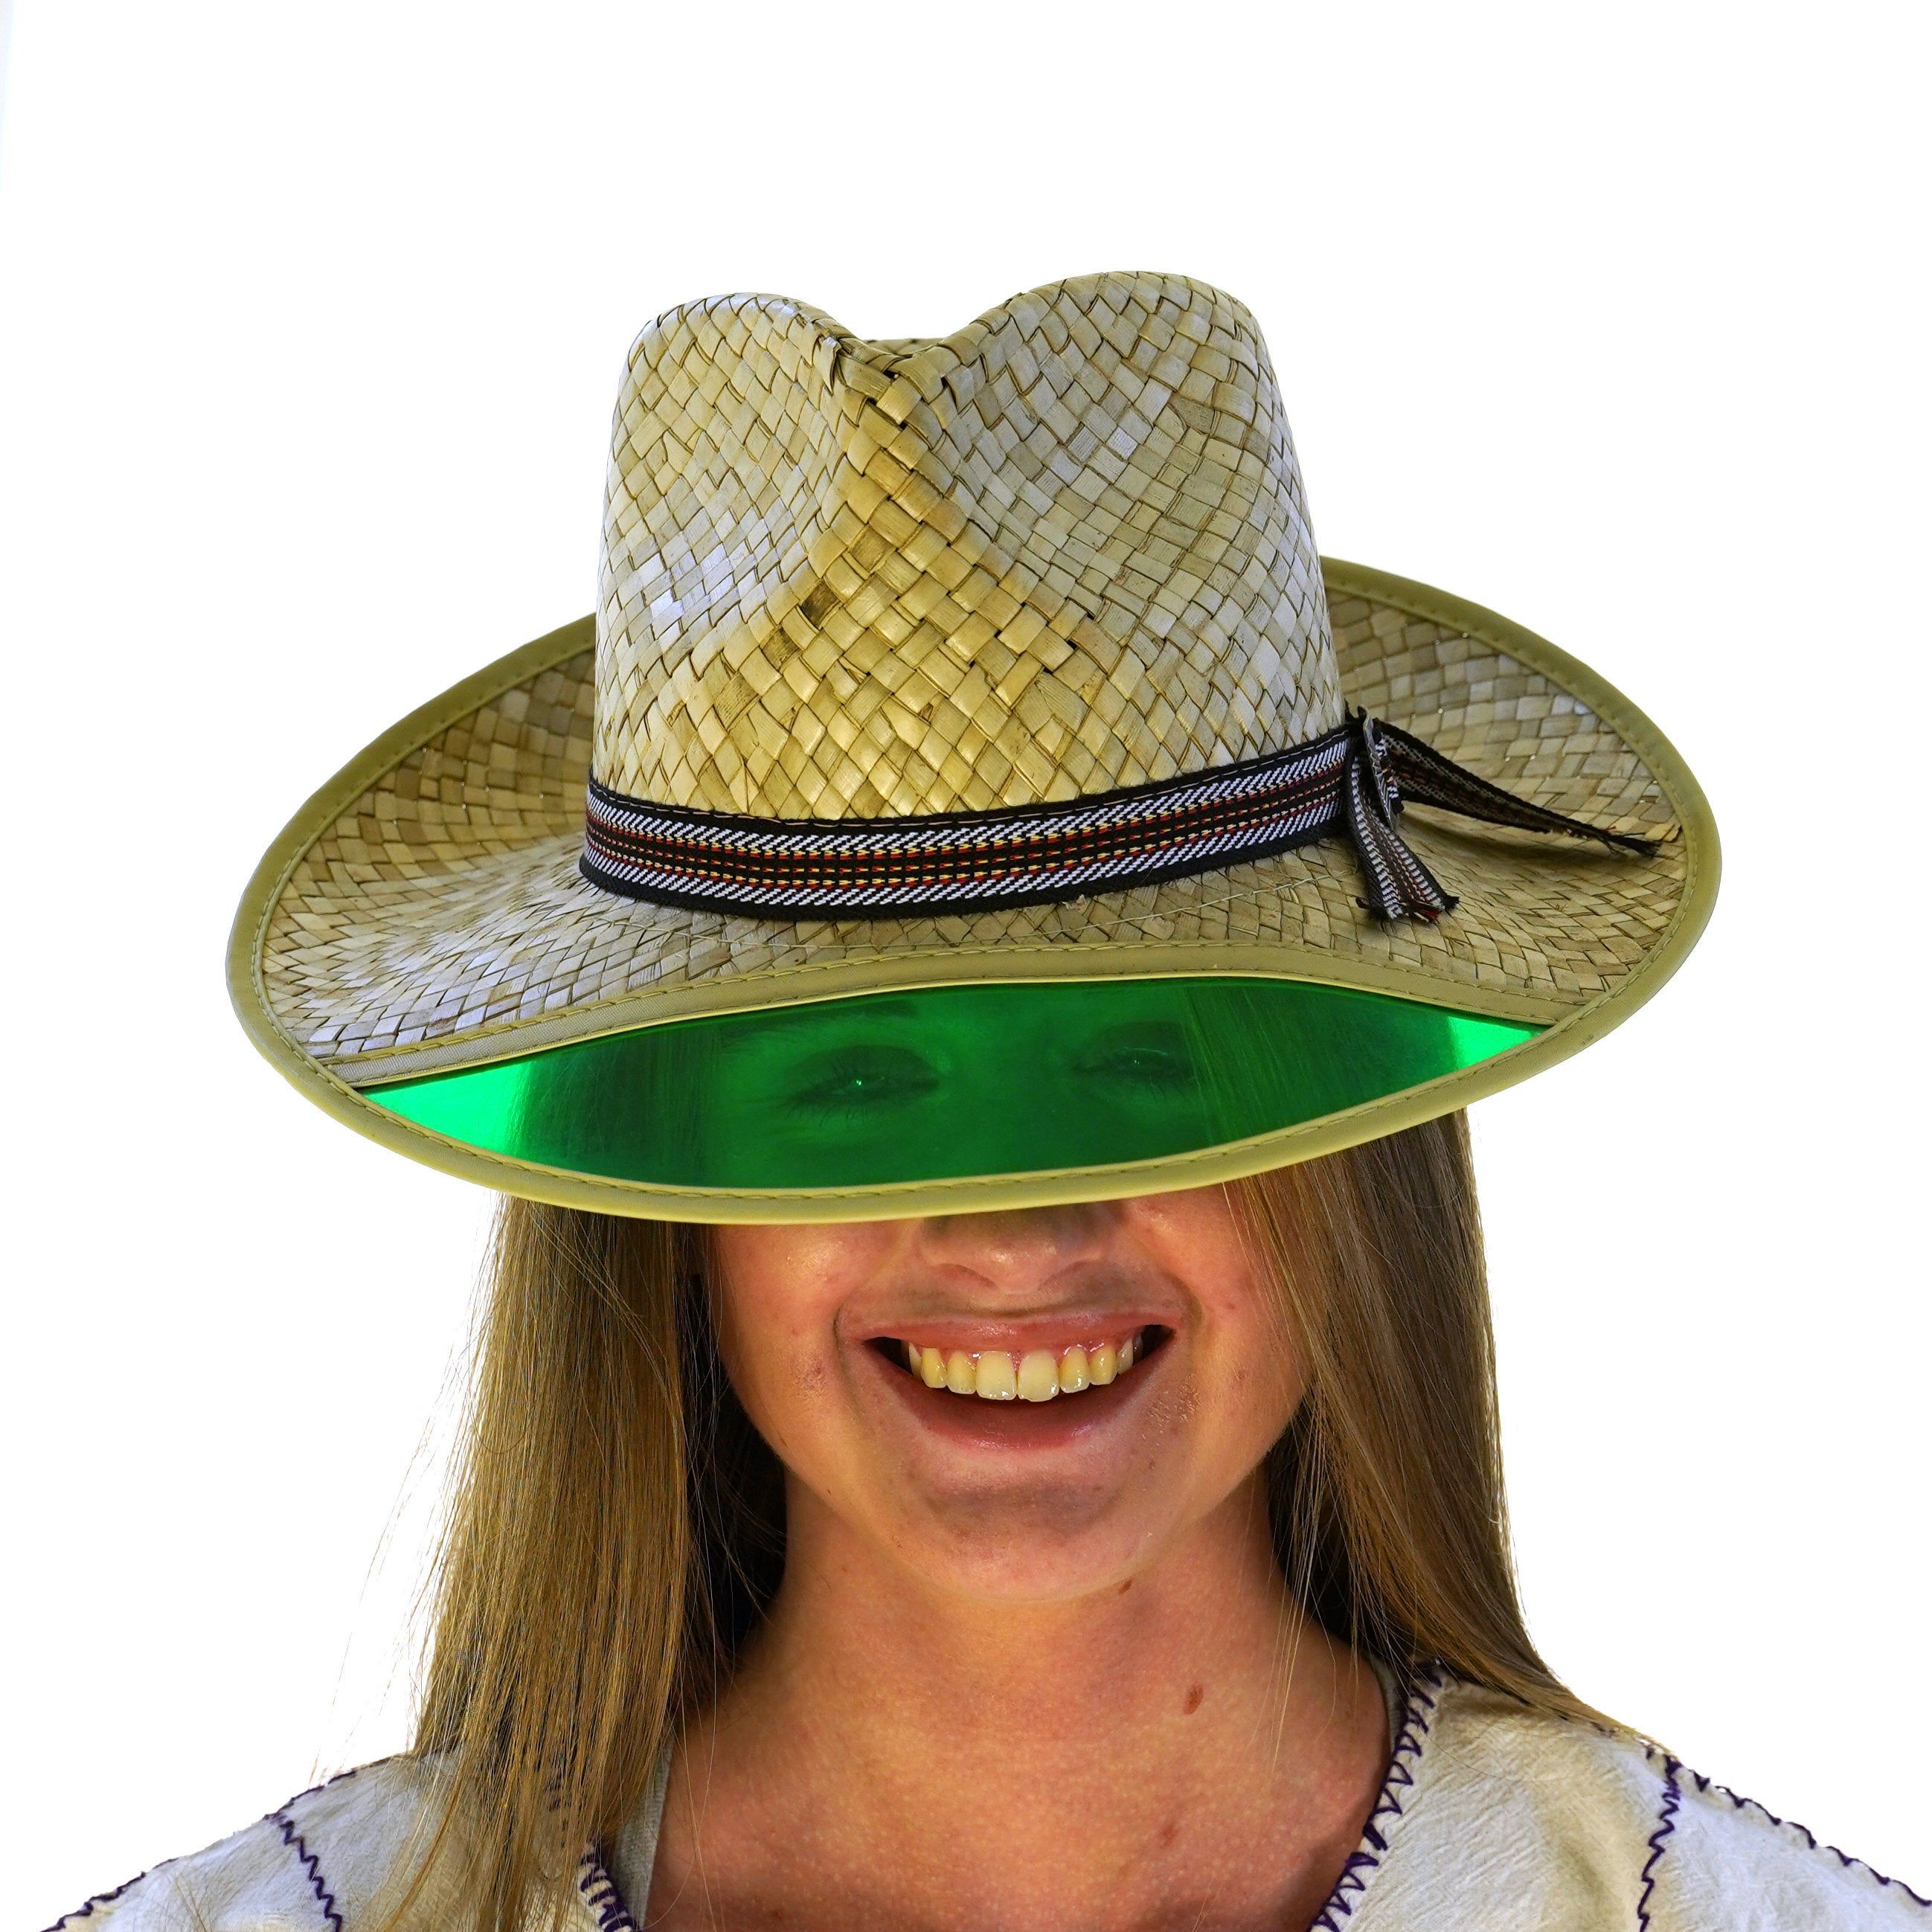 Old Man Straw Hat With Green Plastic Visor Vintage 80s Straw Hat Weird Vintage Vintage